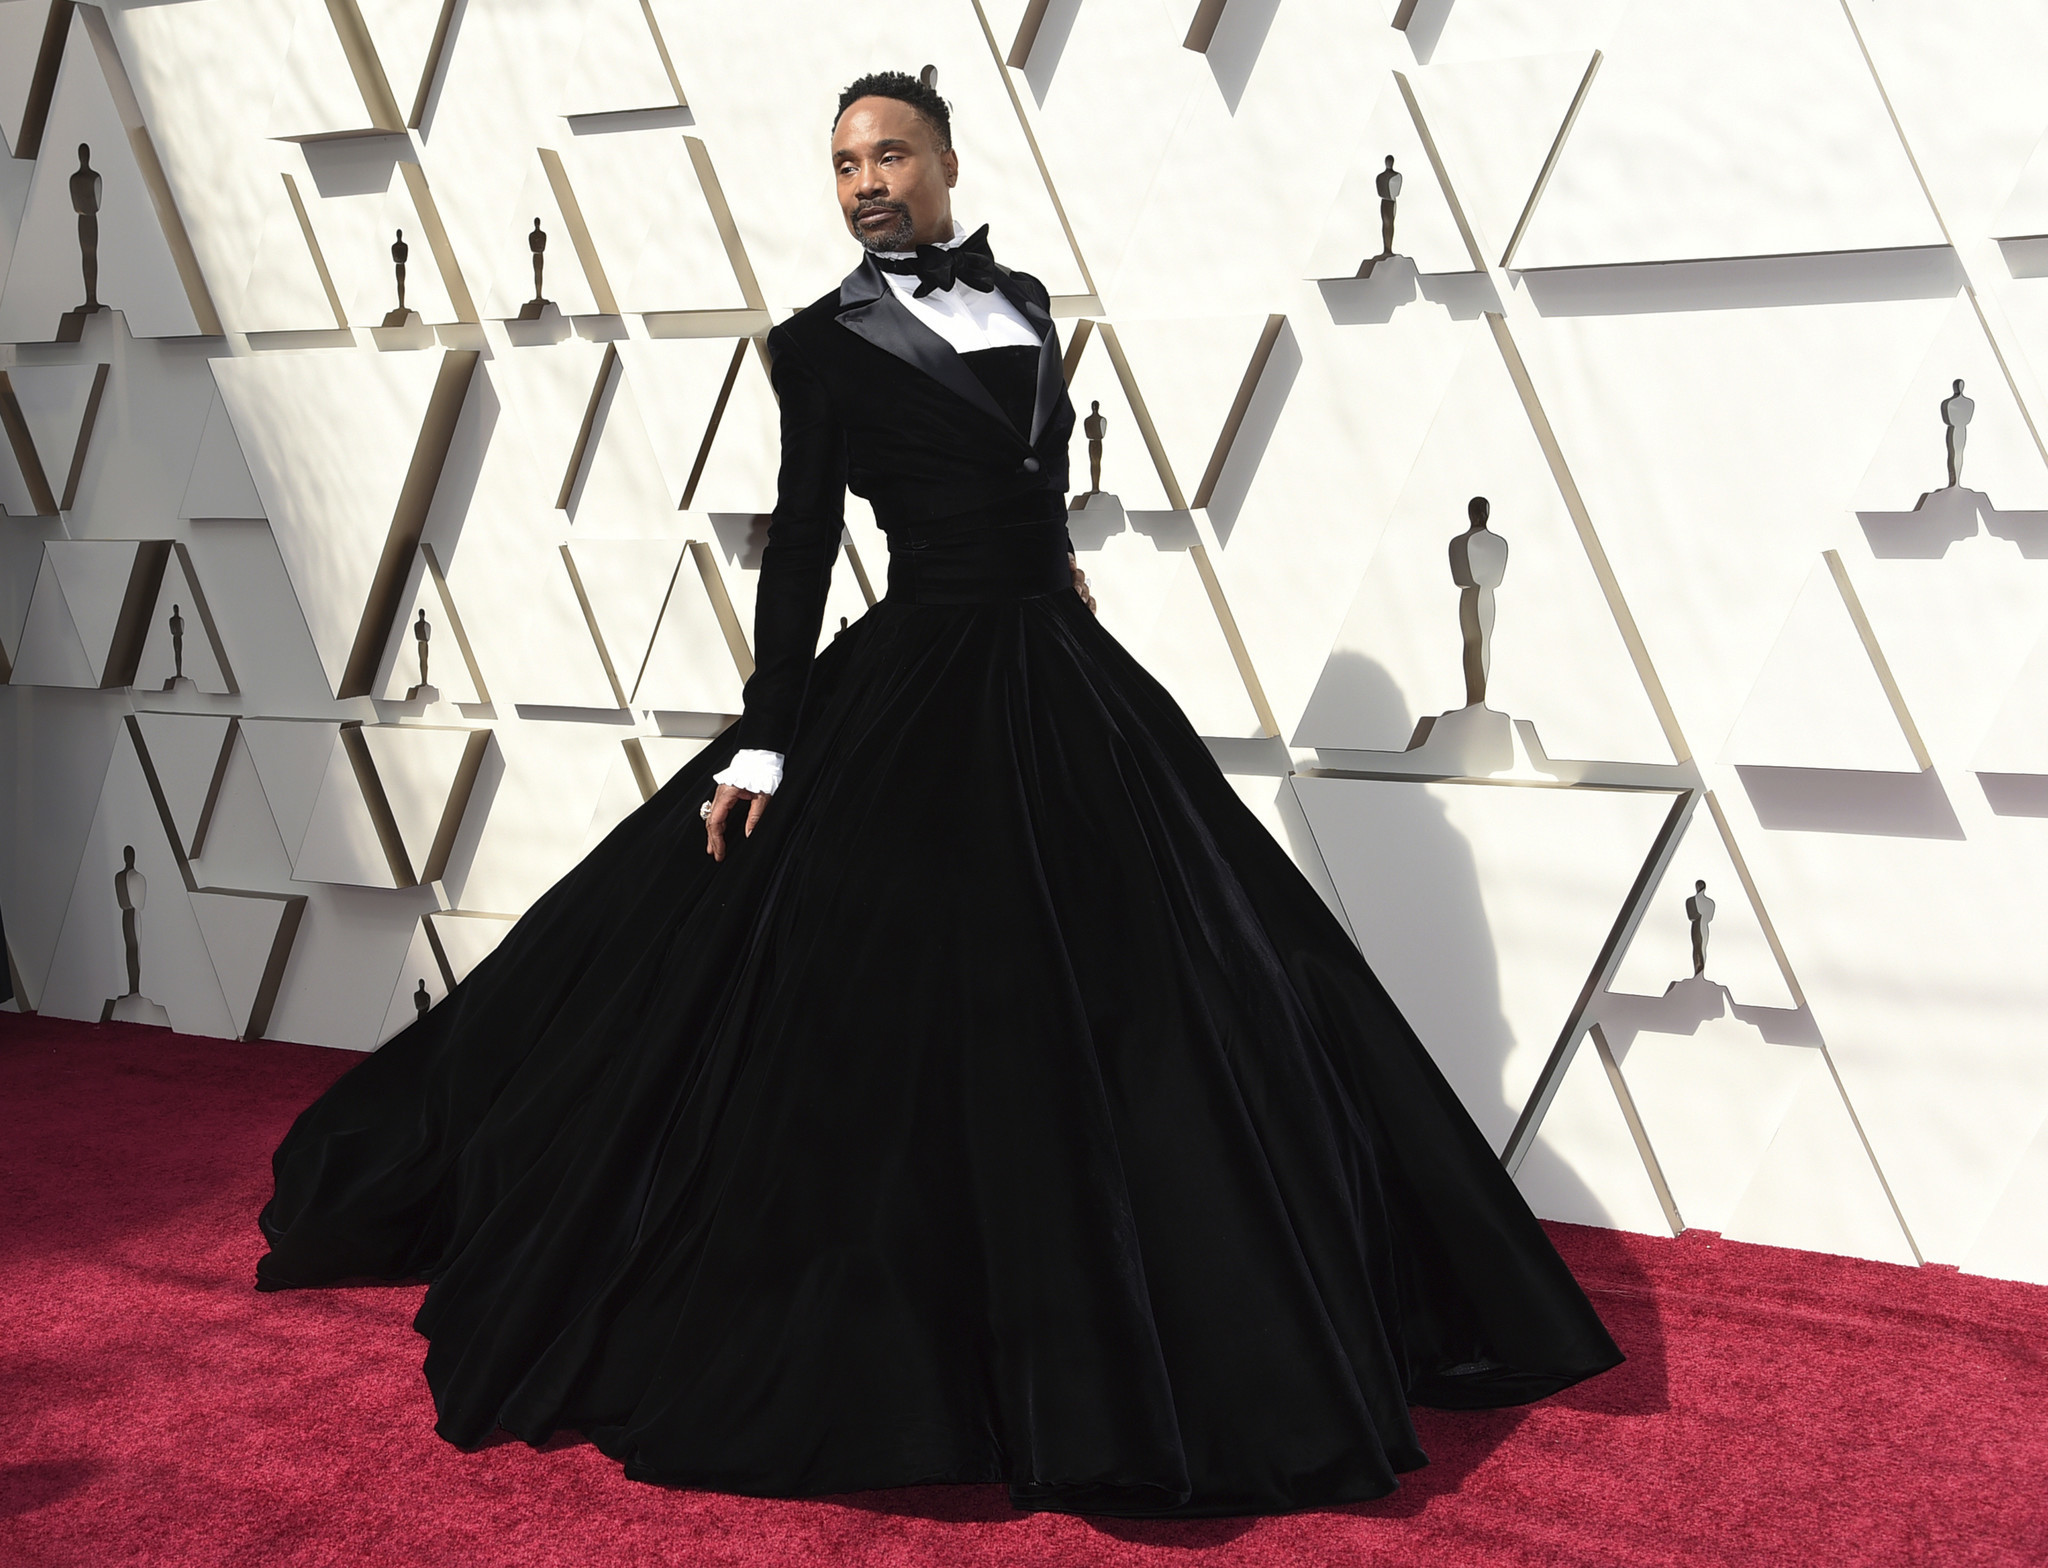 c30f3fb02033d Billy Porter wore a tuxedo and a dress. We should all feel empowered to  make such bold choices. - Chicago Tribune